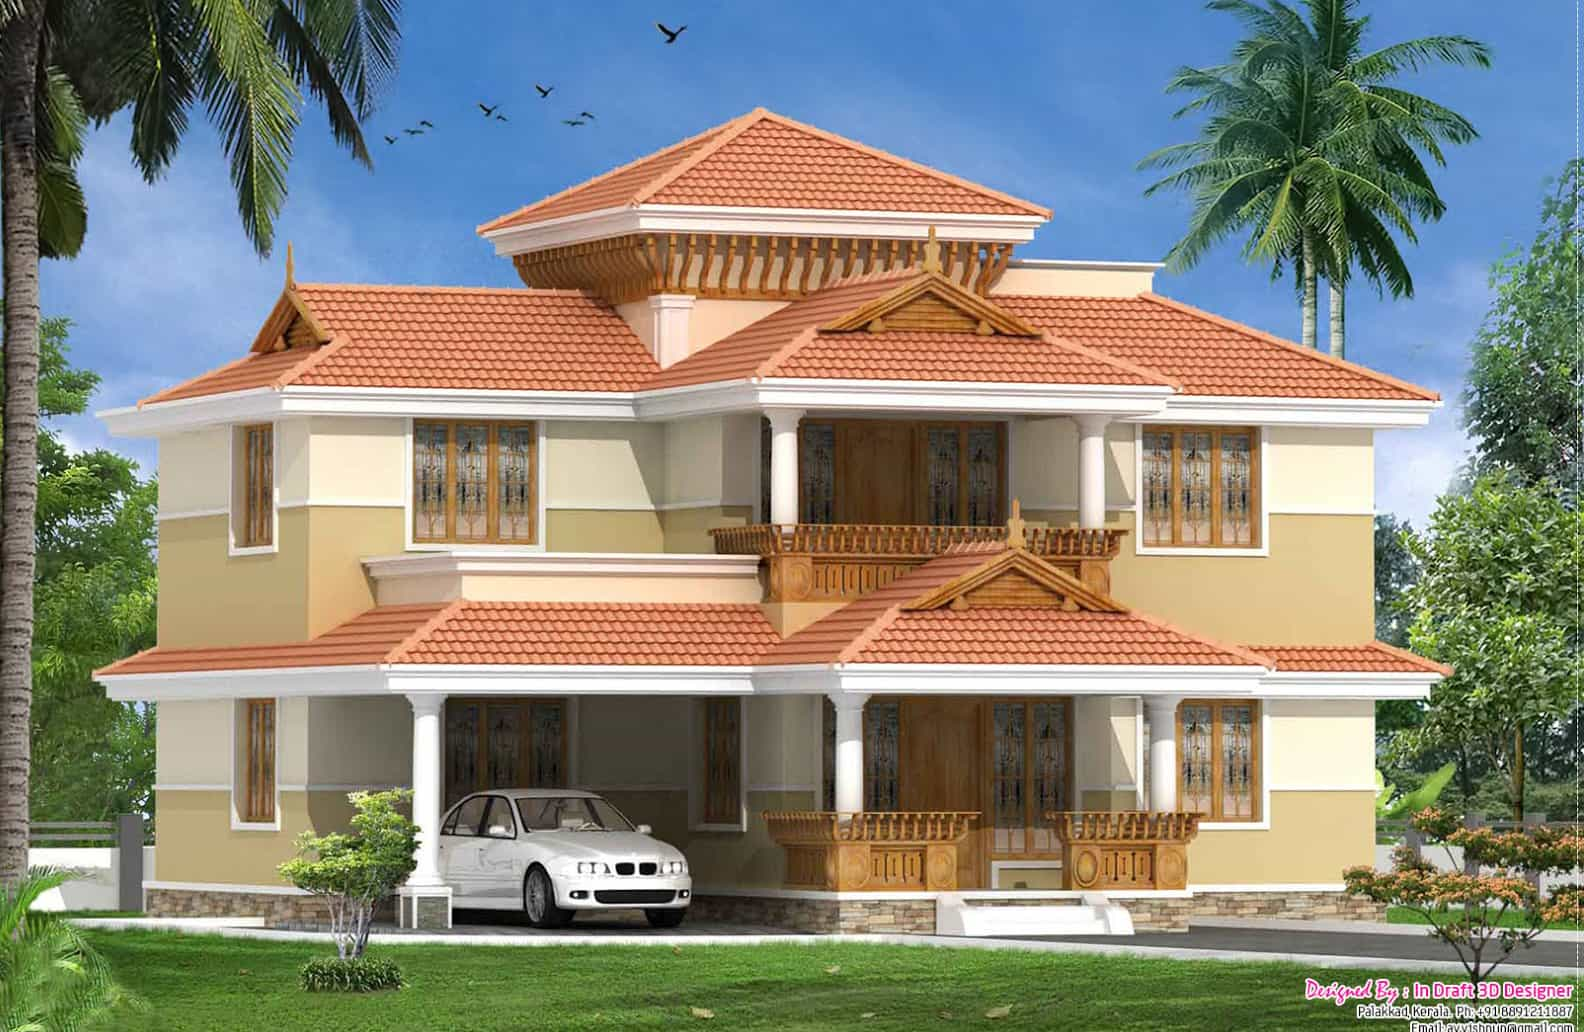 Traditional malayalee 3bhk home design at 2060 for Tradition home